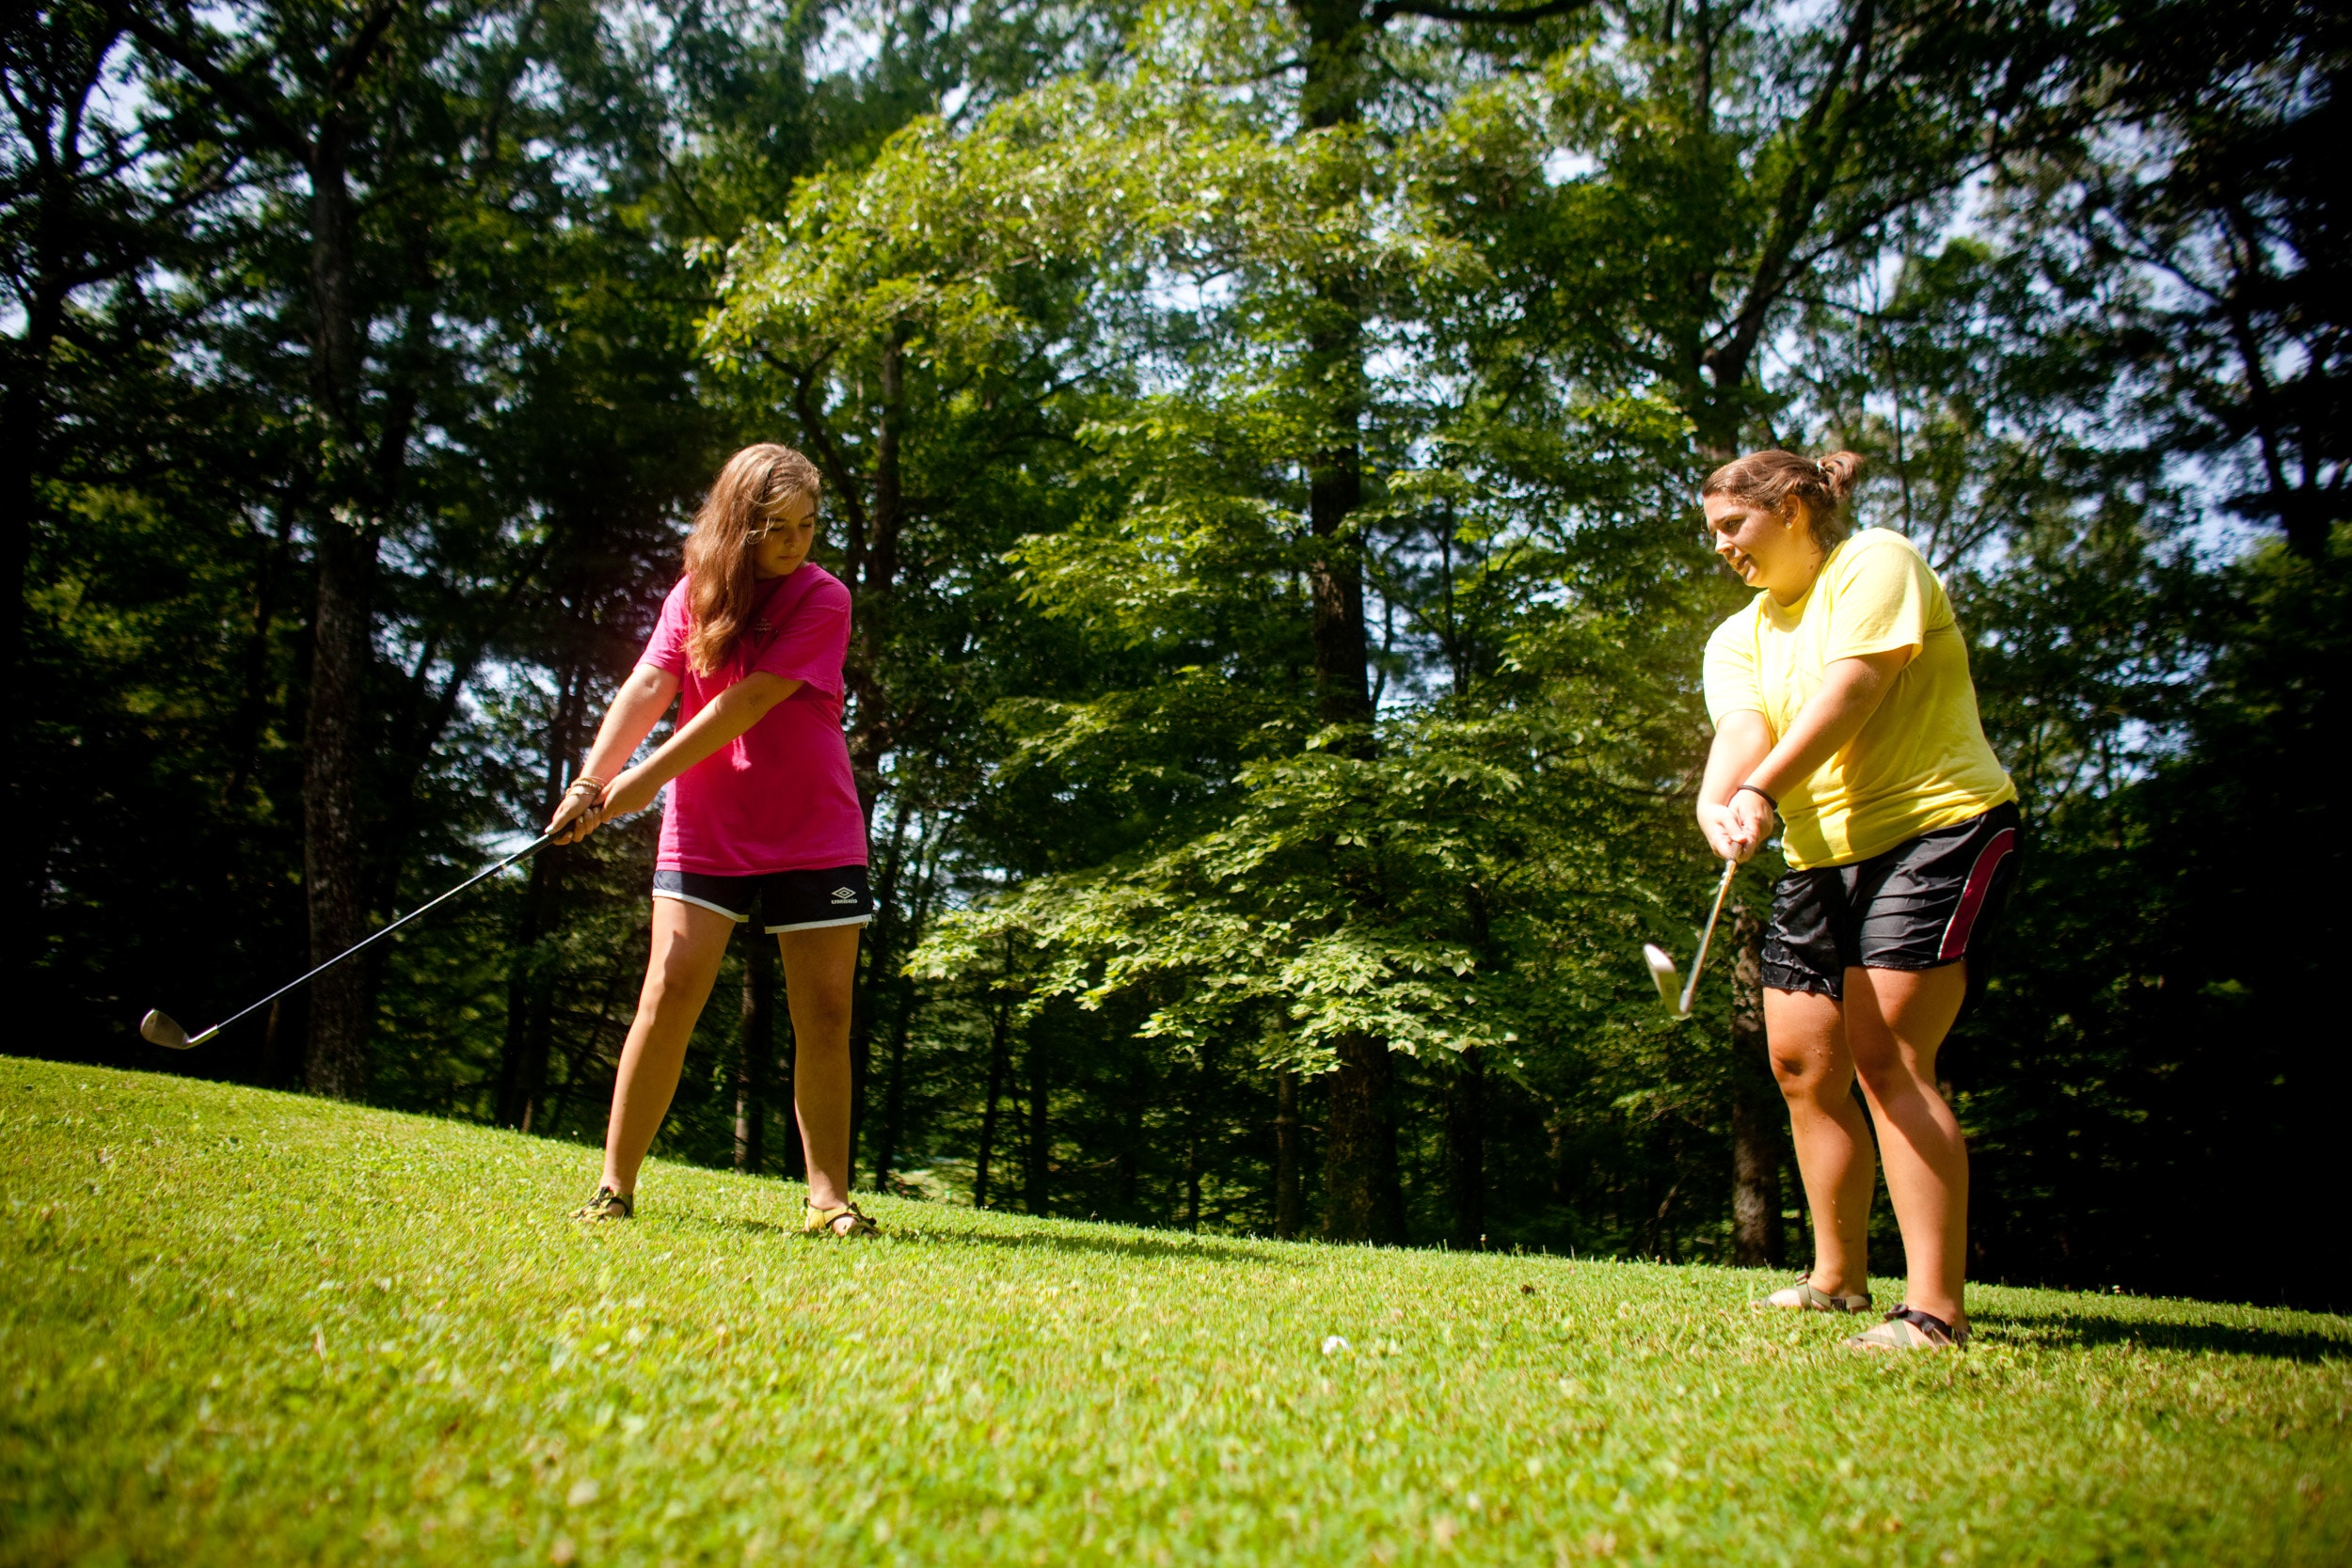 Teaching golf keystone summer camp for girls in brevard north carolina.jpg?ixlib=rails 2.1